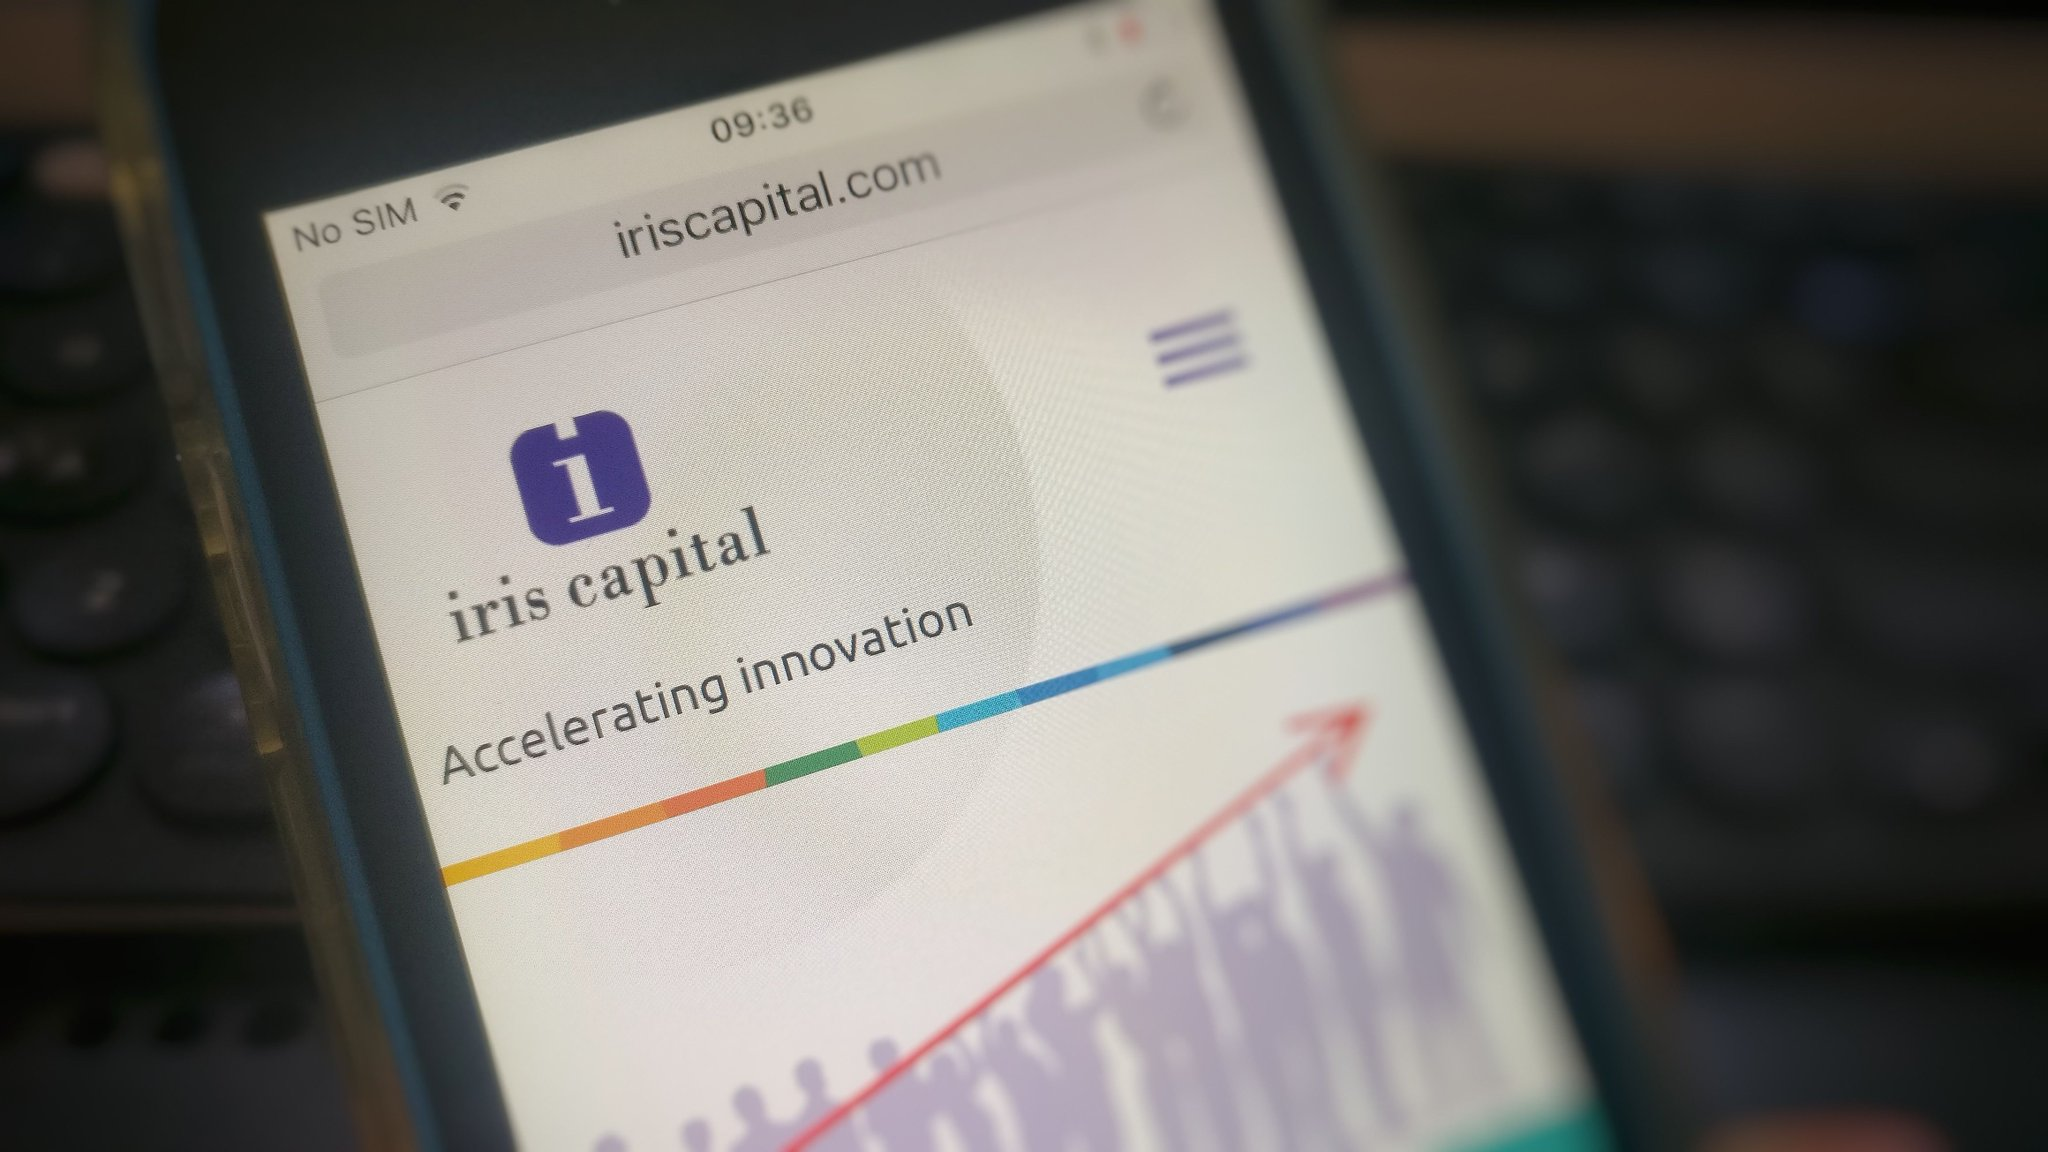 Thumbnail for Iris Capital announces the €250M first closing  of its new VC fund IrisNext